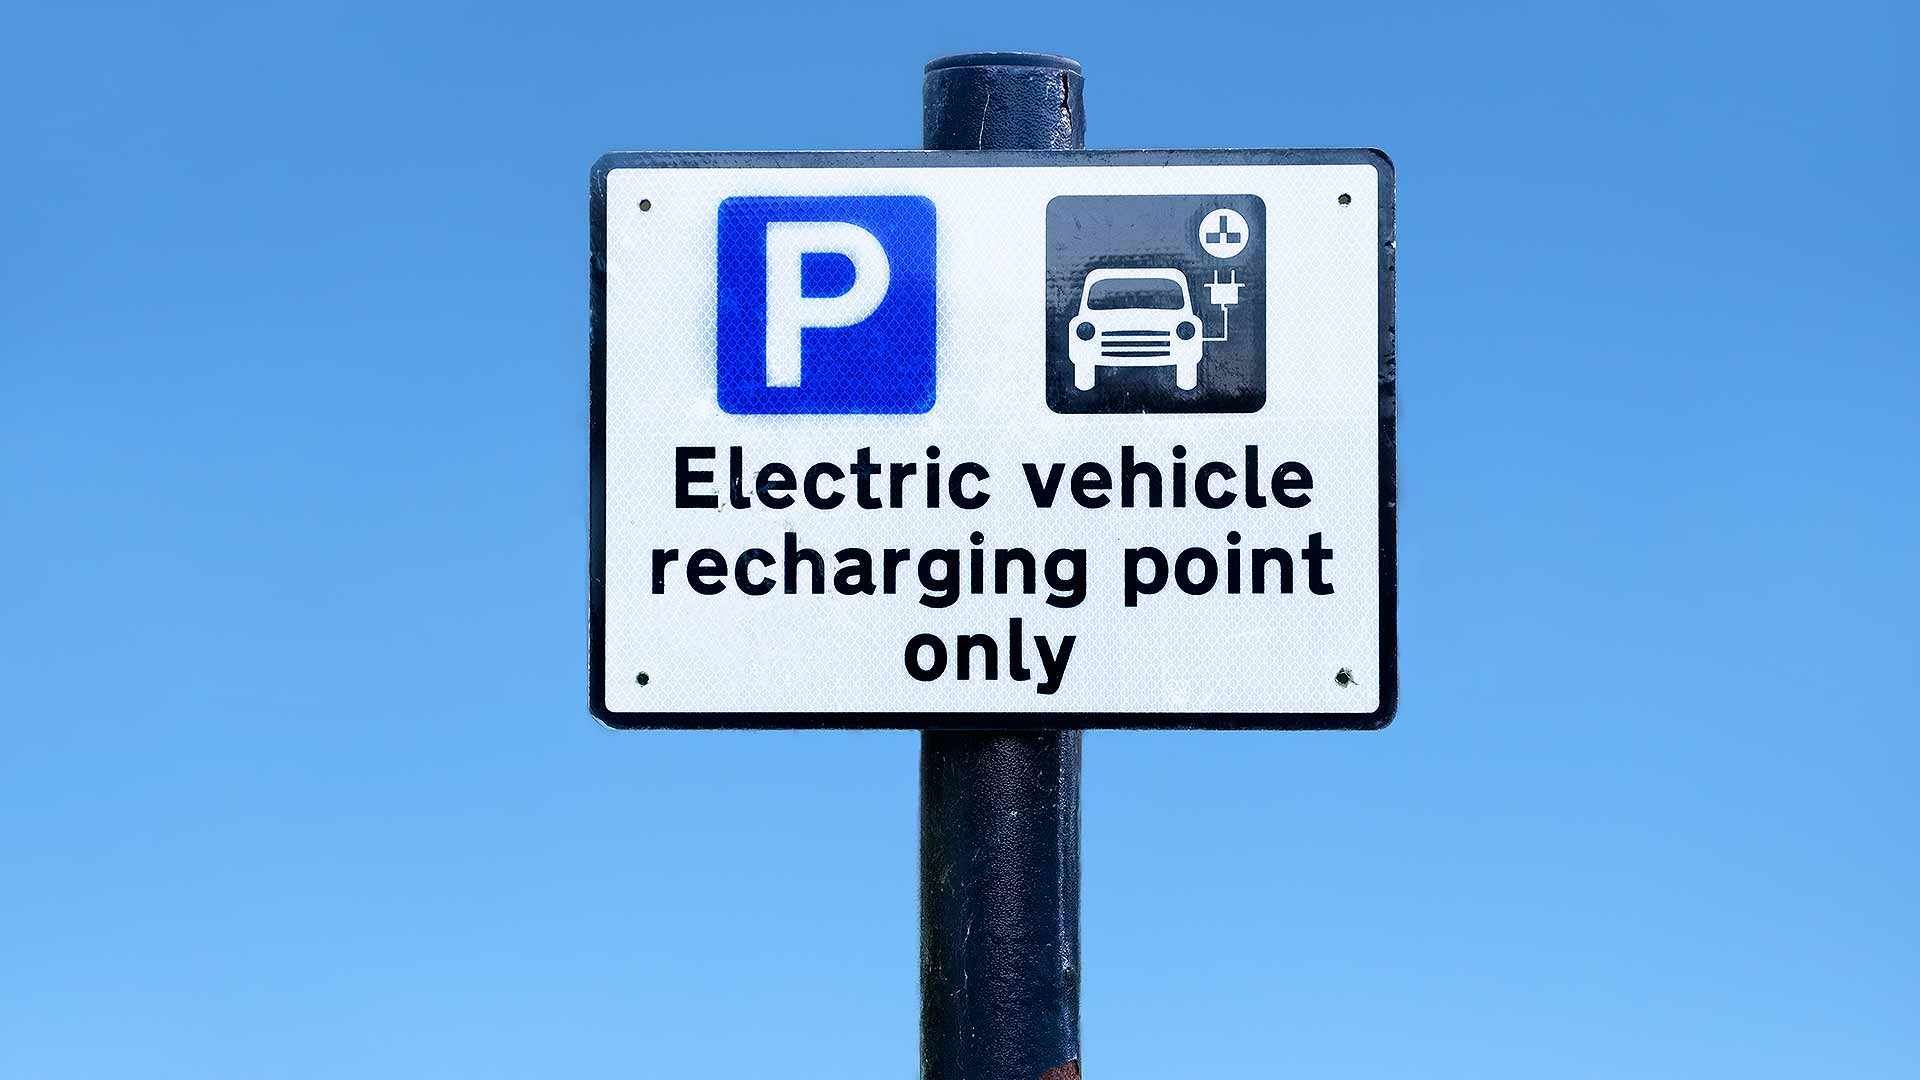 Electric vehicle recharging point warning sign